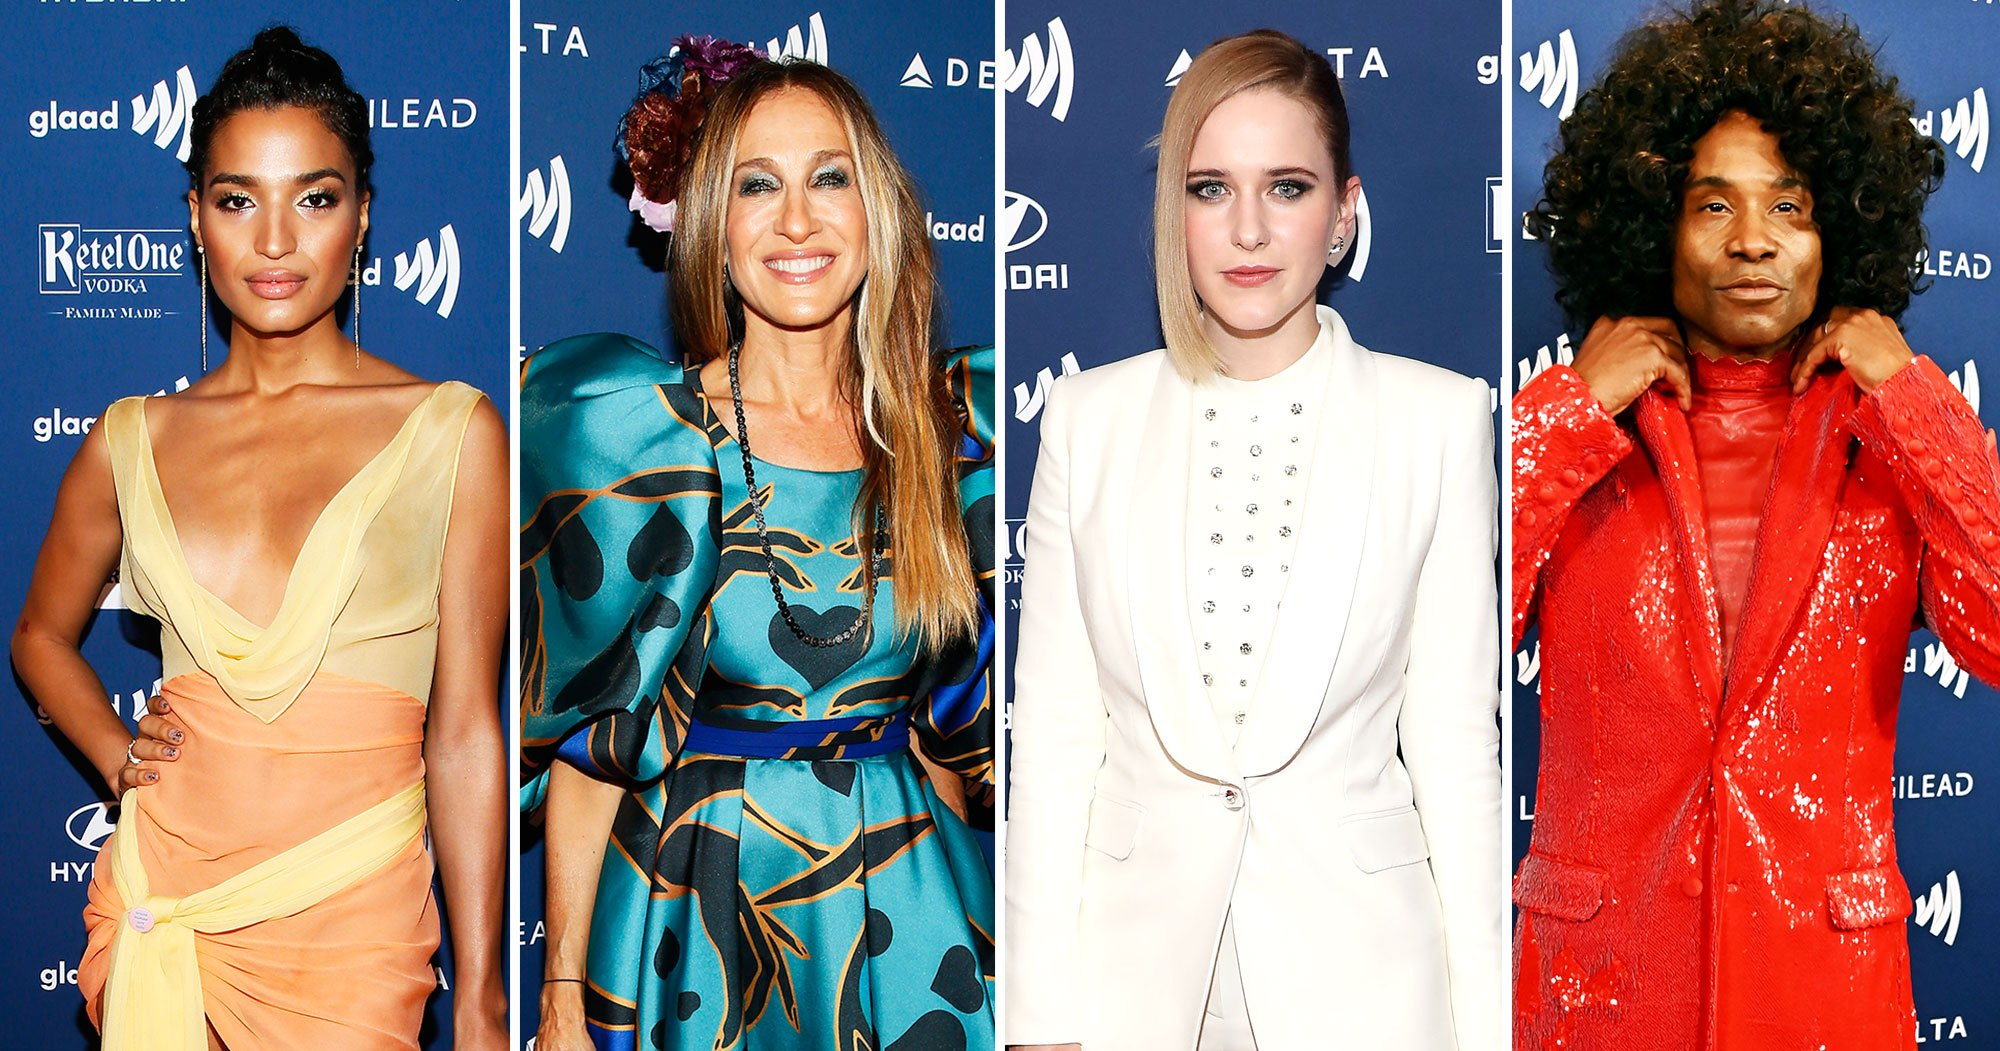 GLAAD Media Awards 2019 Red Carpet Fashion: See All the Stars' Styles